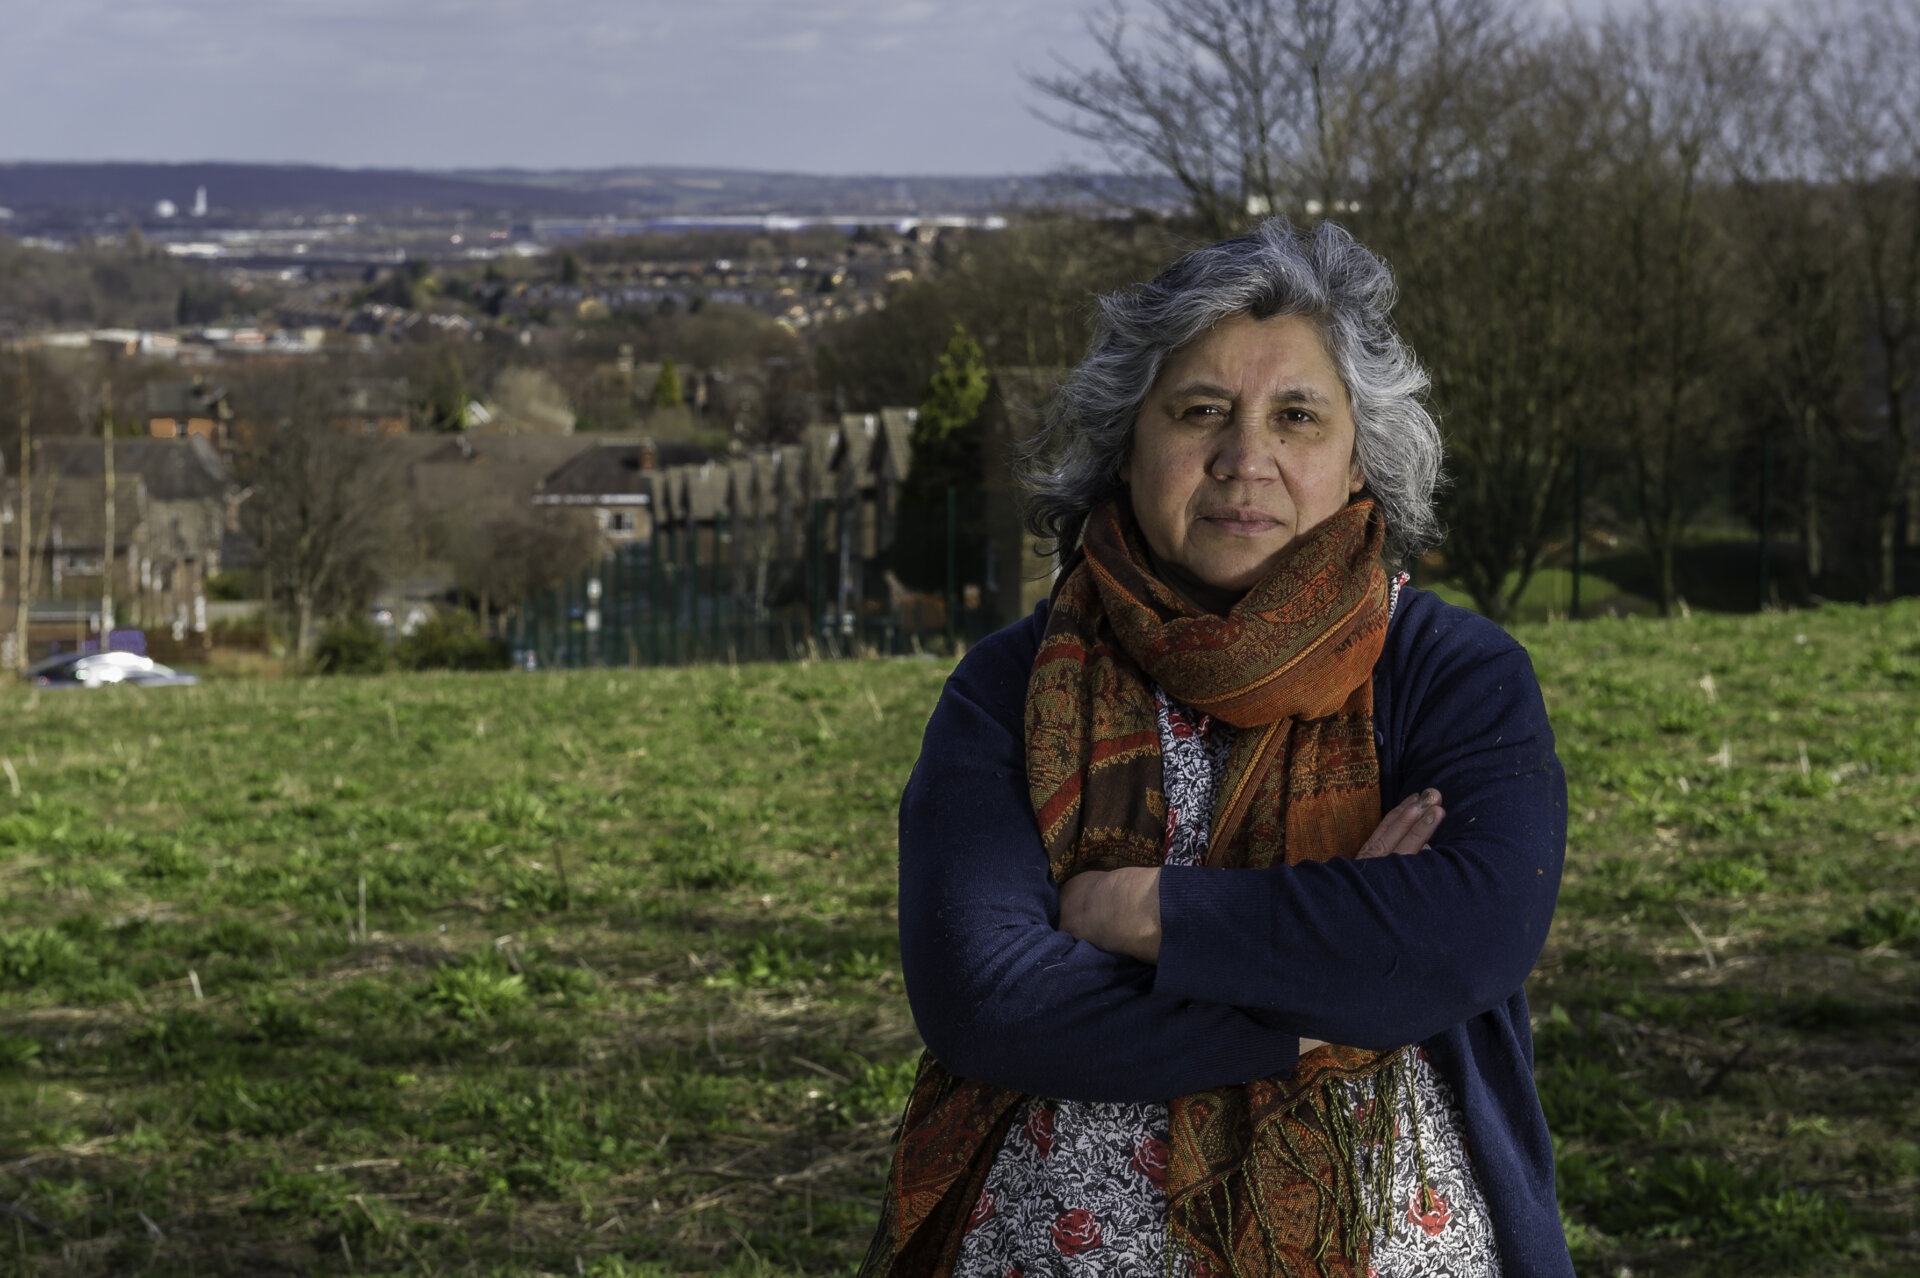 Isilda lang portrait photo on Pitsmoor hill